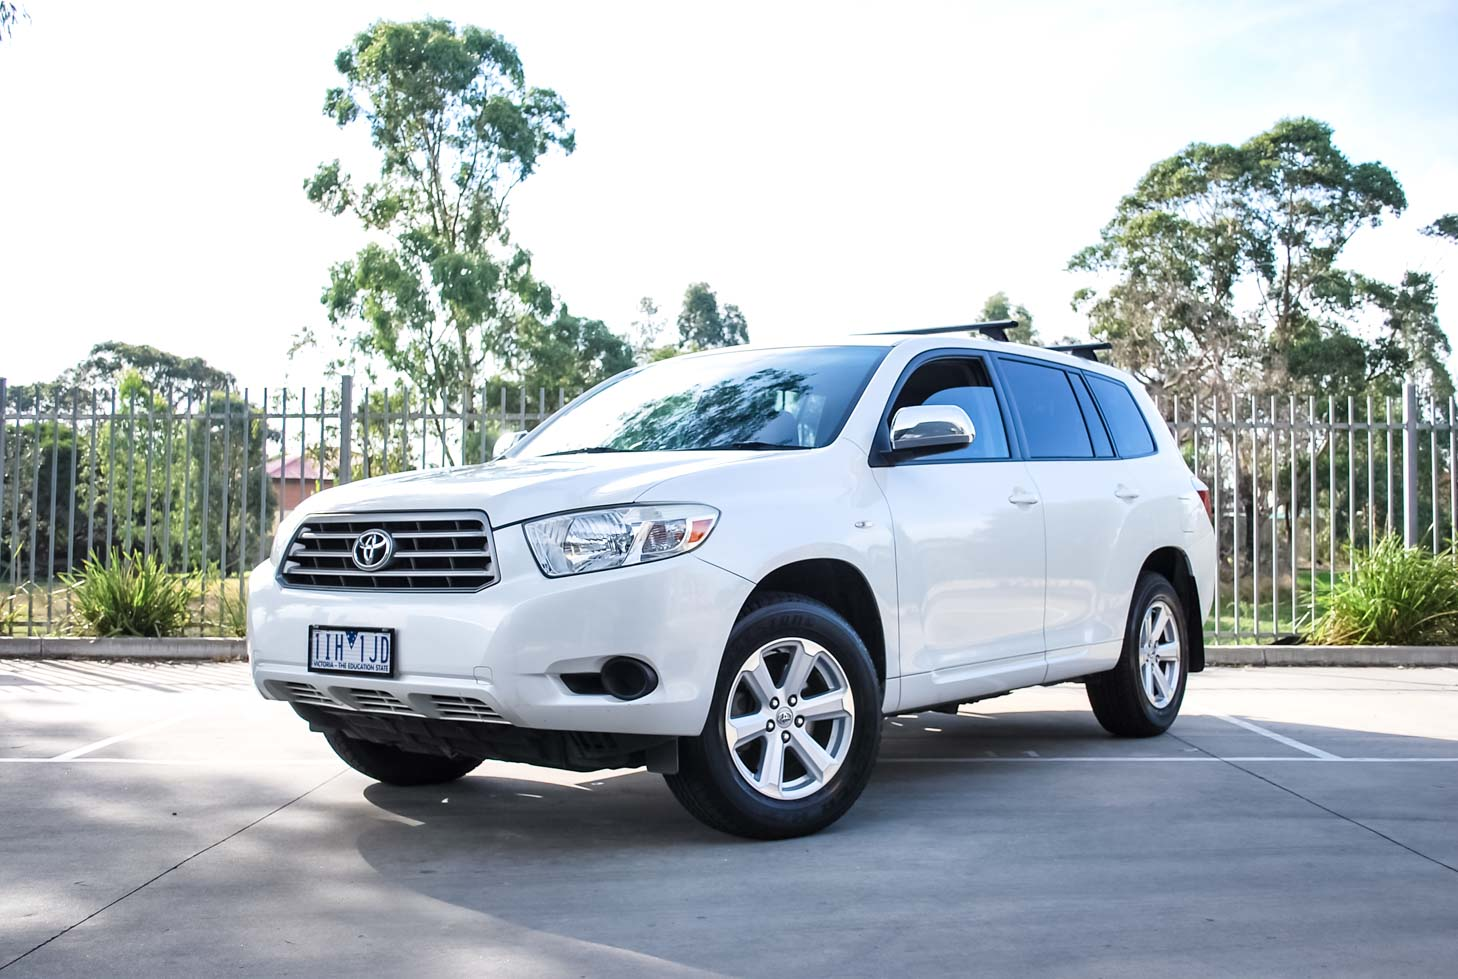 Cars With 3rd Row Seating >> 2009 Toyota Kluger KX-R 7 Seats – Find Me Cars